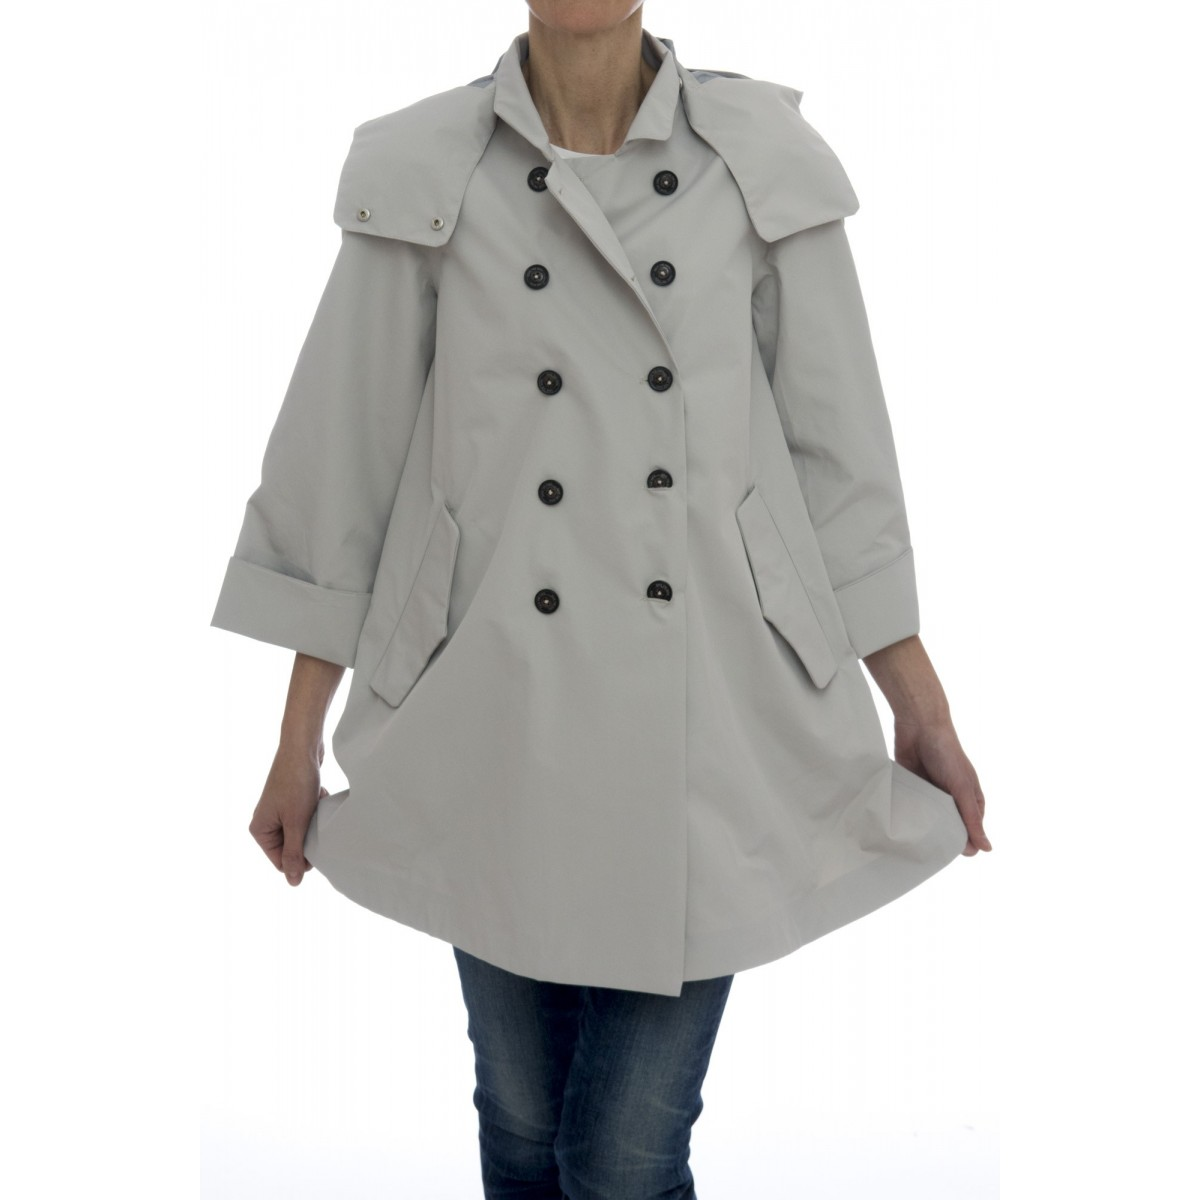 Giubbini - D4312w tech trench